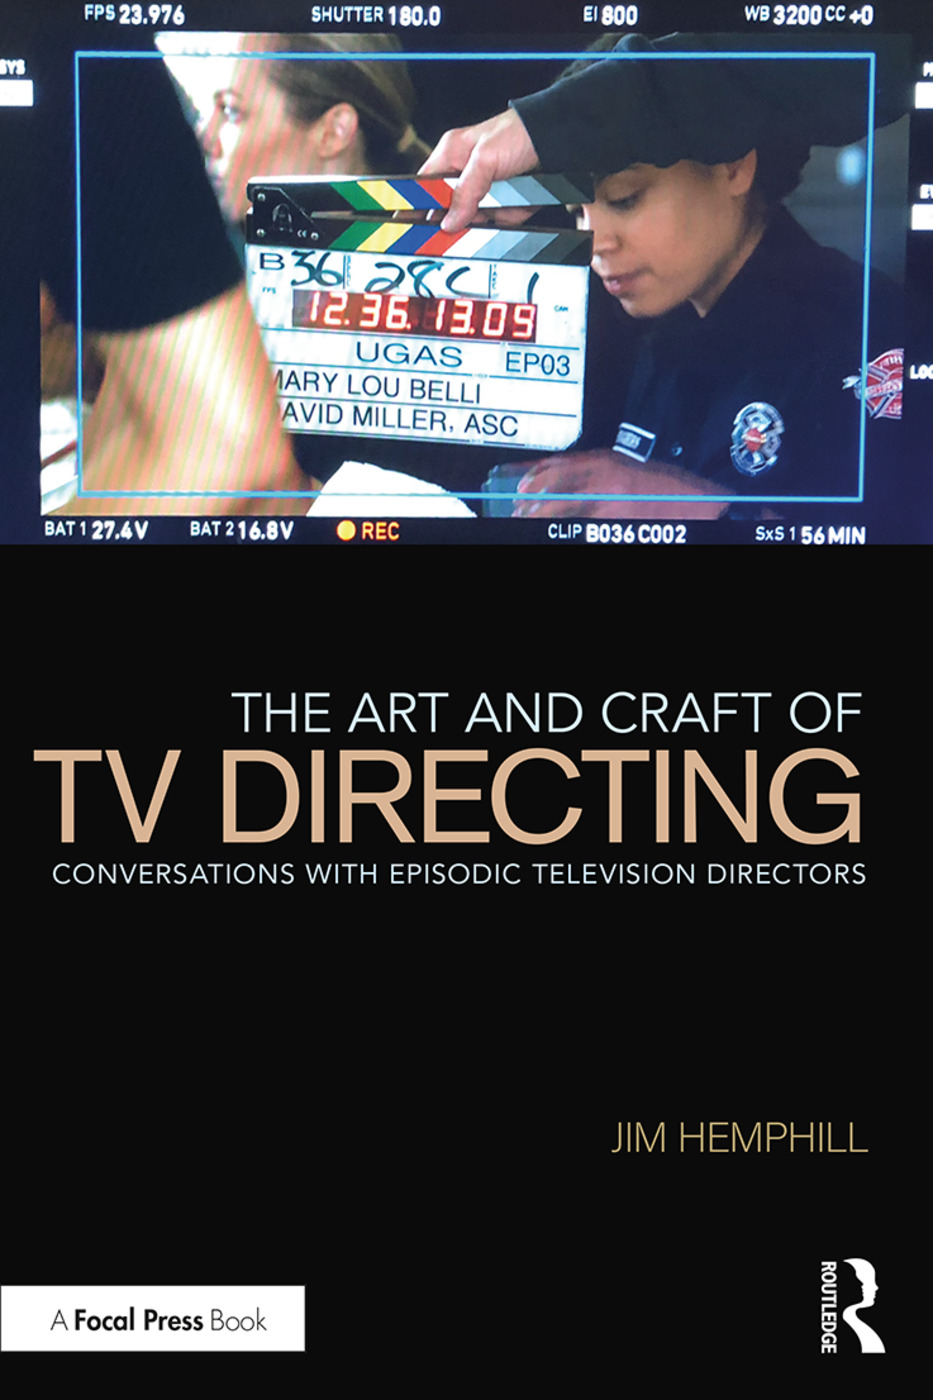 The Art and Craft of TV Directing: Conversations with Episodic Television Directors book cover